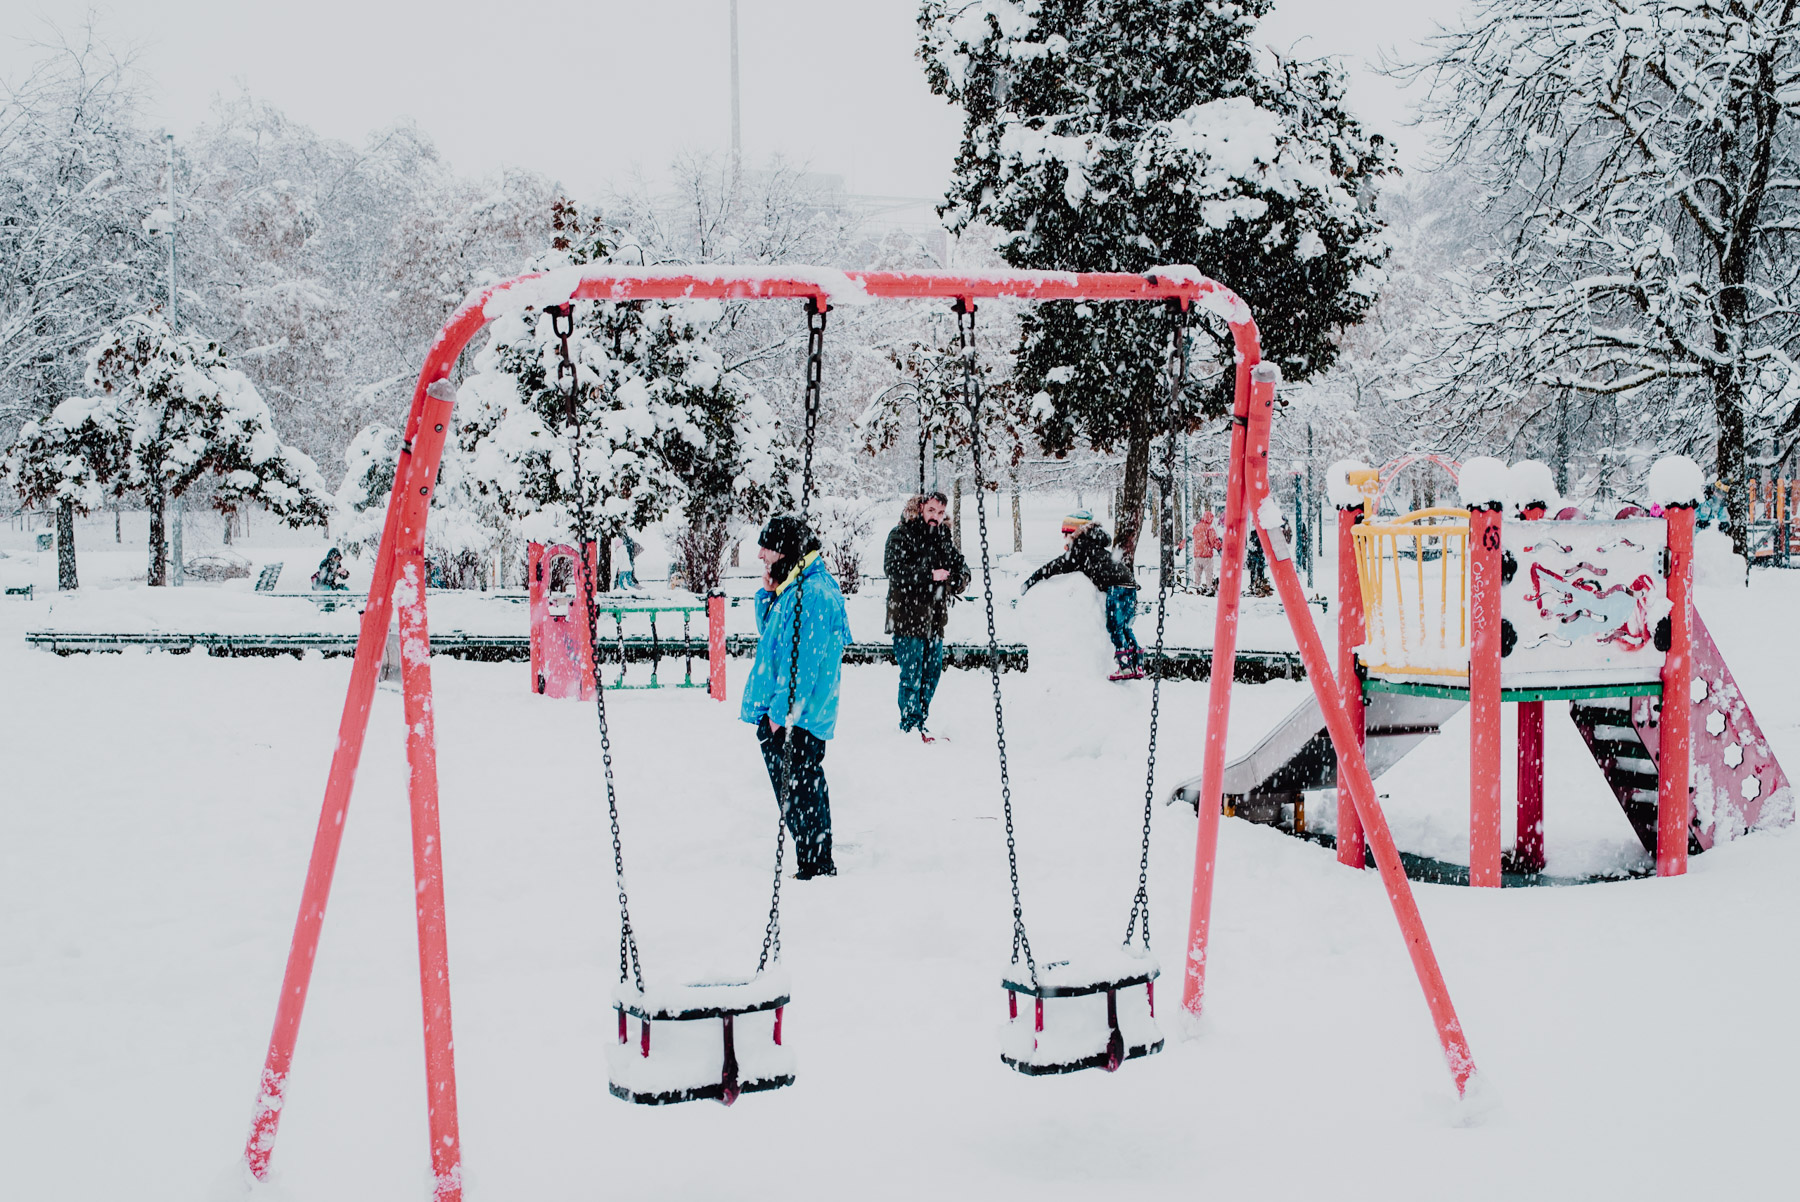 Snow in Milan on December 2020, people standing and talking in the middle of a playground, neve a Milano a dicembre 2020, persone si trovano per giocare e parlare nell'area giochi per bambini